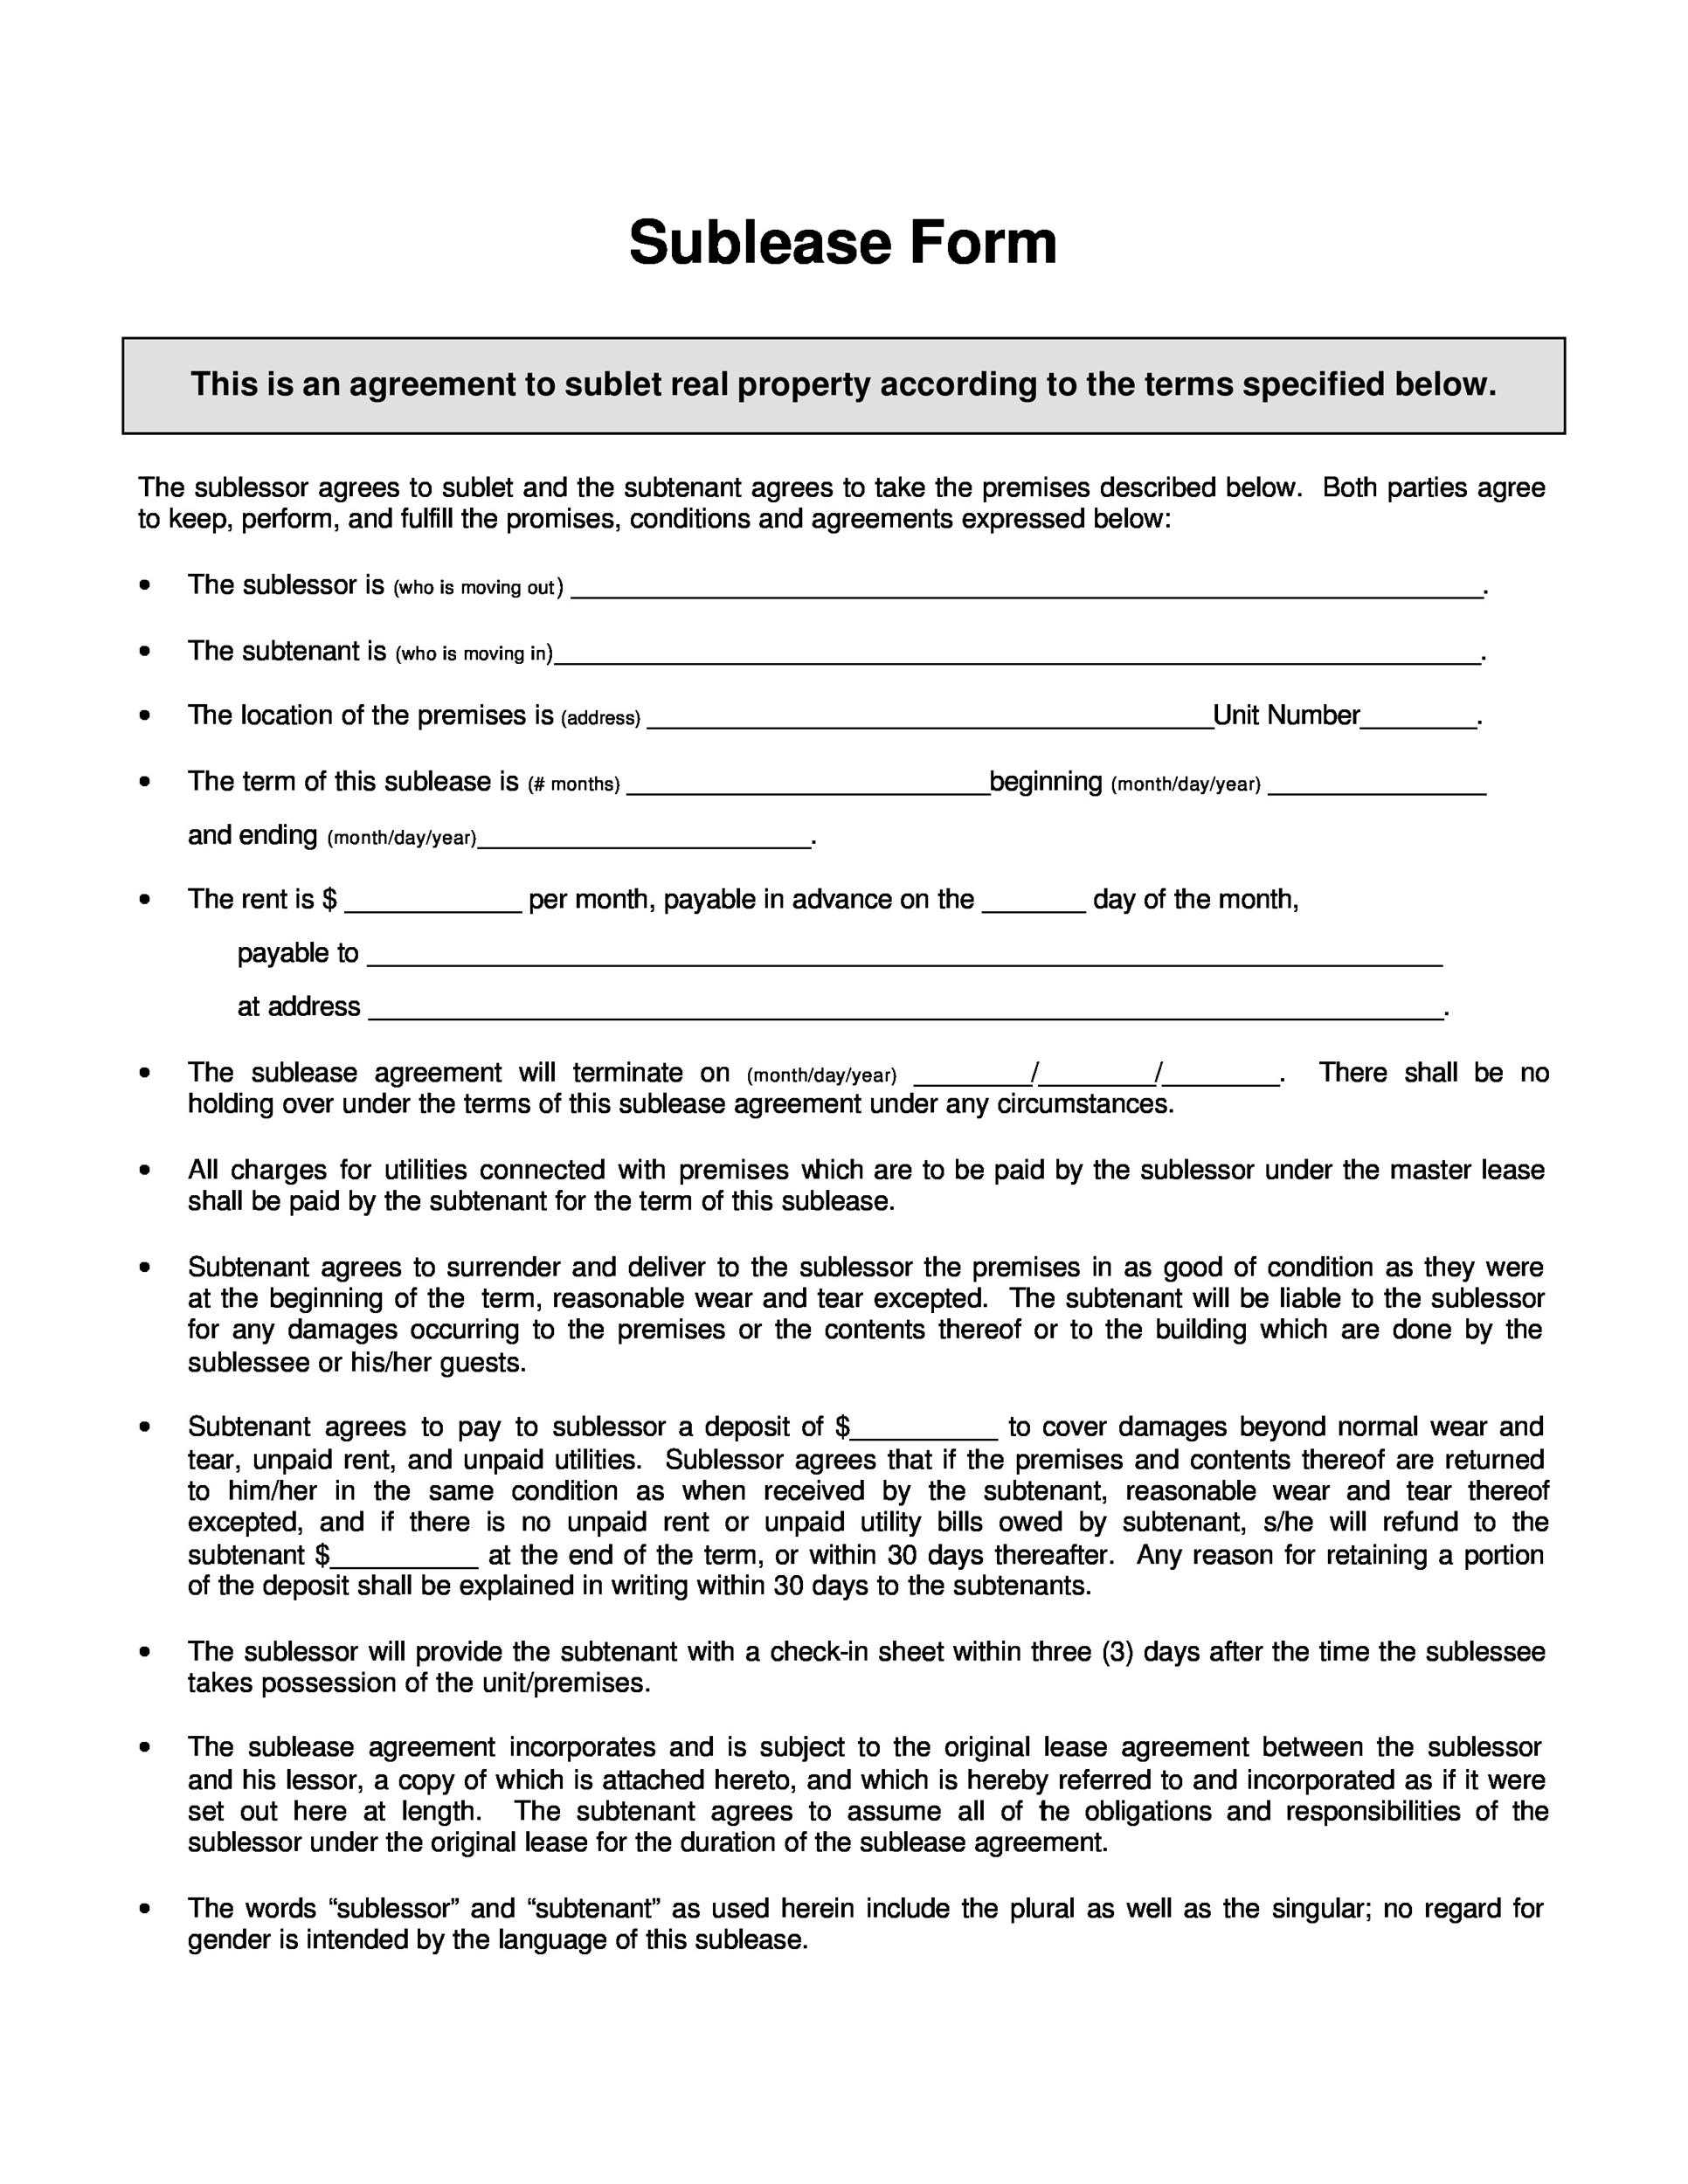 40 Professional Sublease Agreement Templates Forms